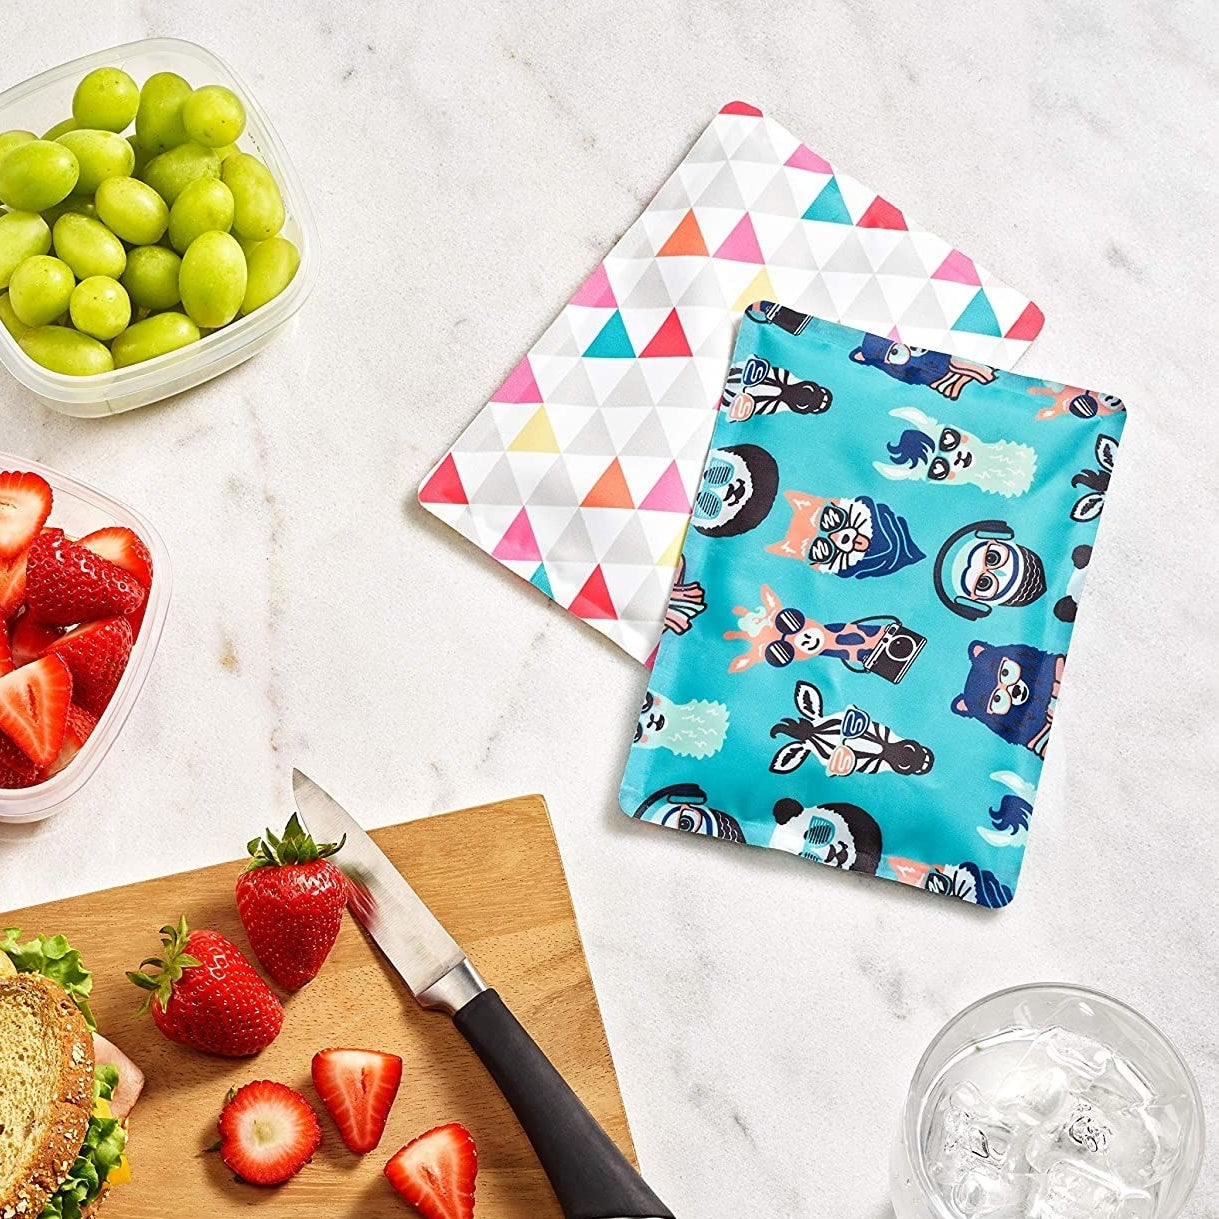 two vibrant ice packs on a table next to a cutting board and glass of water